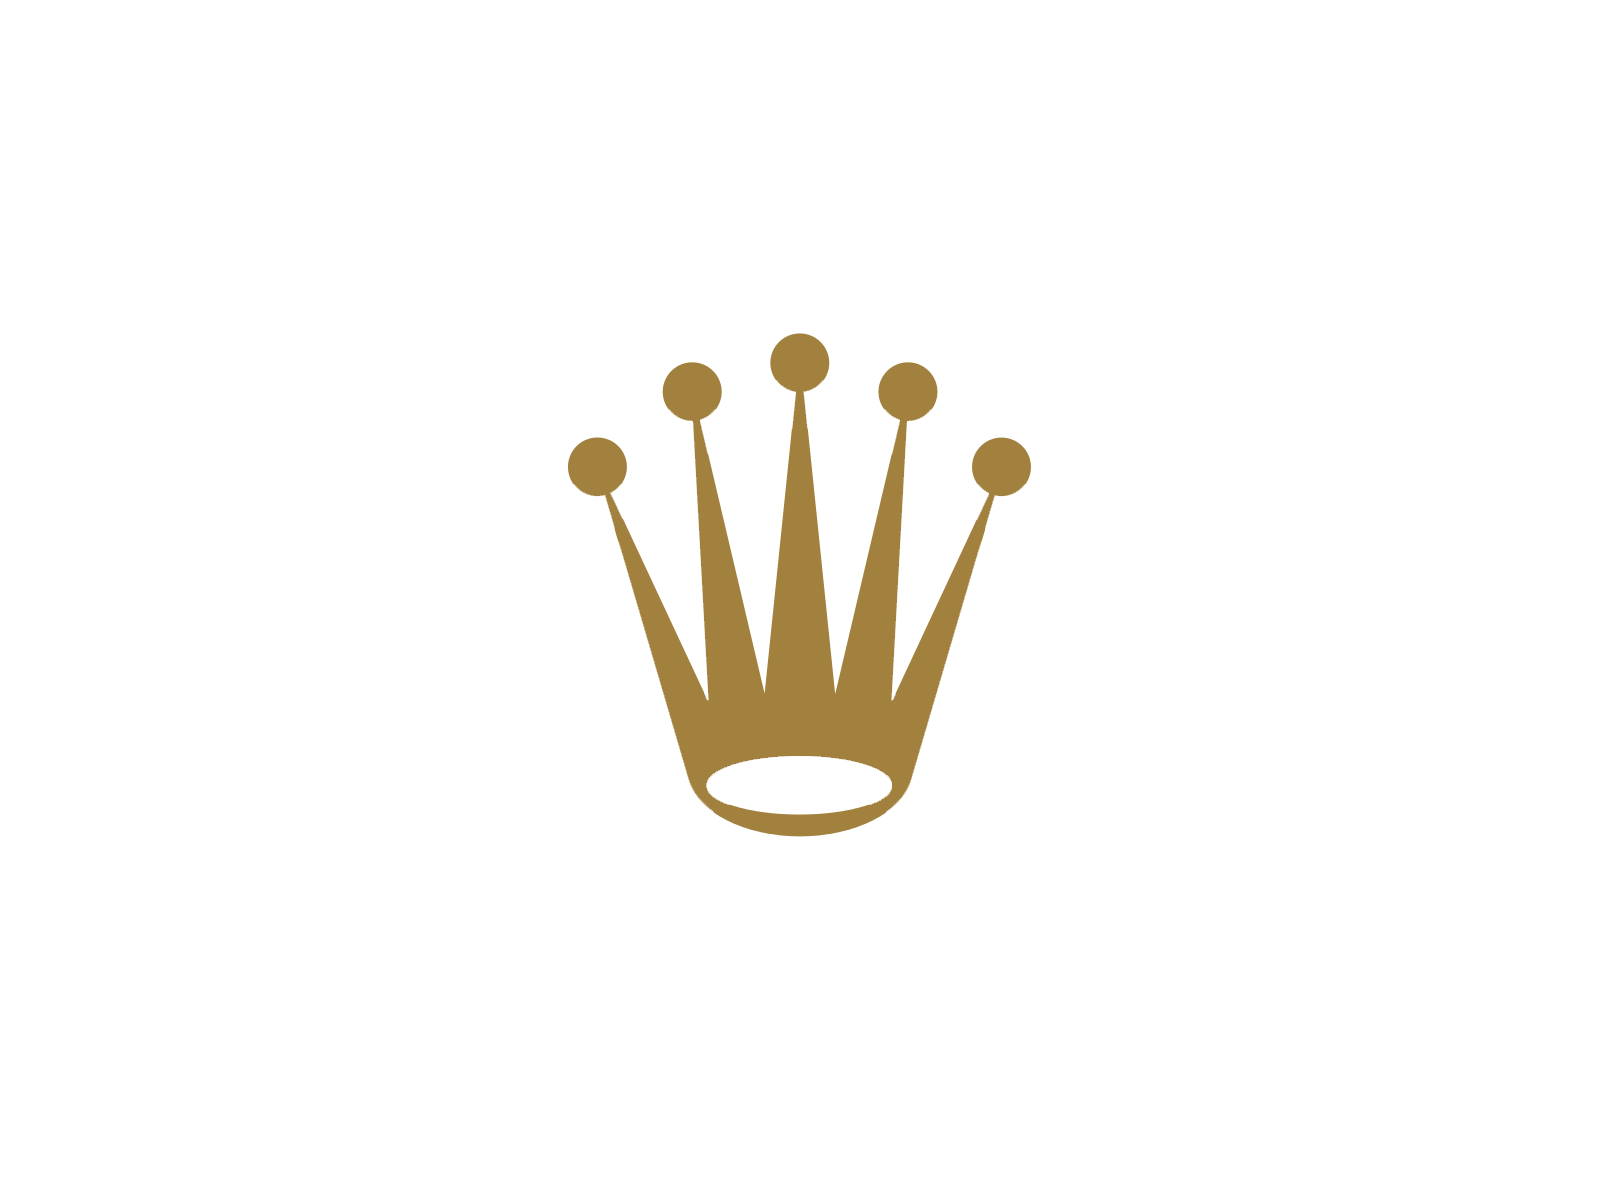 Rolex crown png. Silhouette at getdrawings com